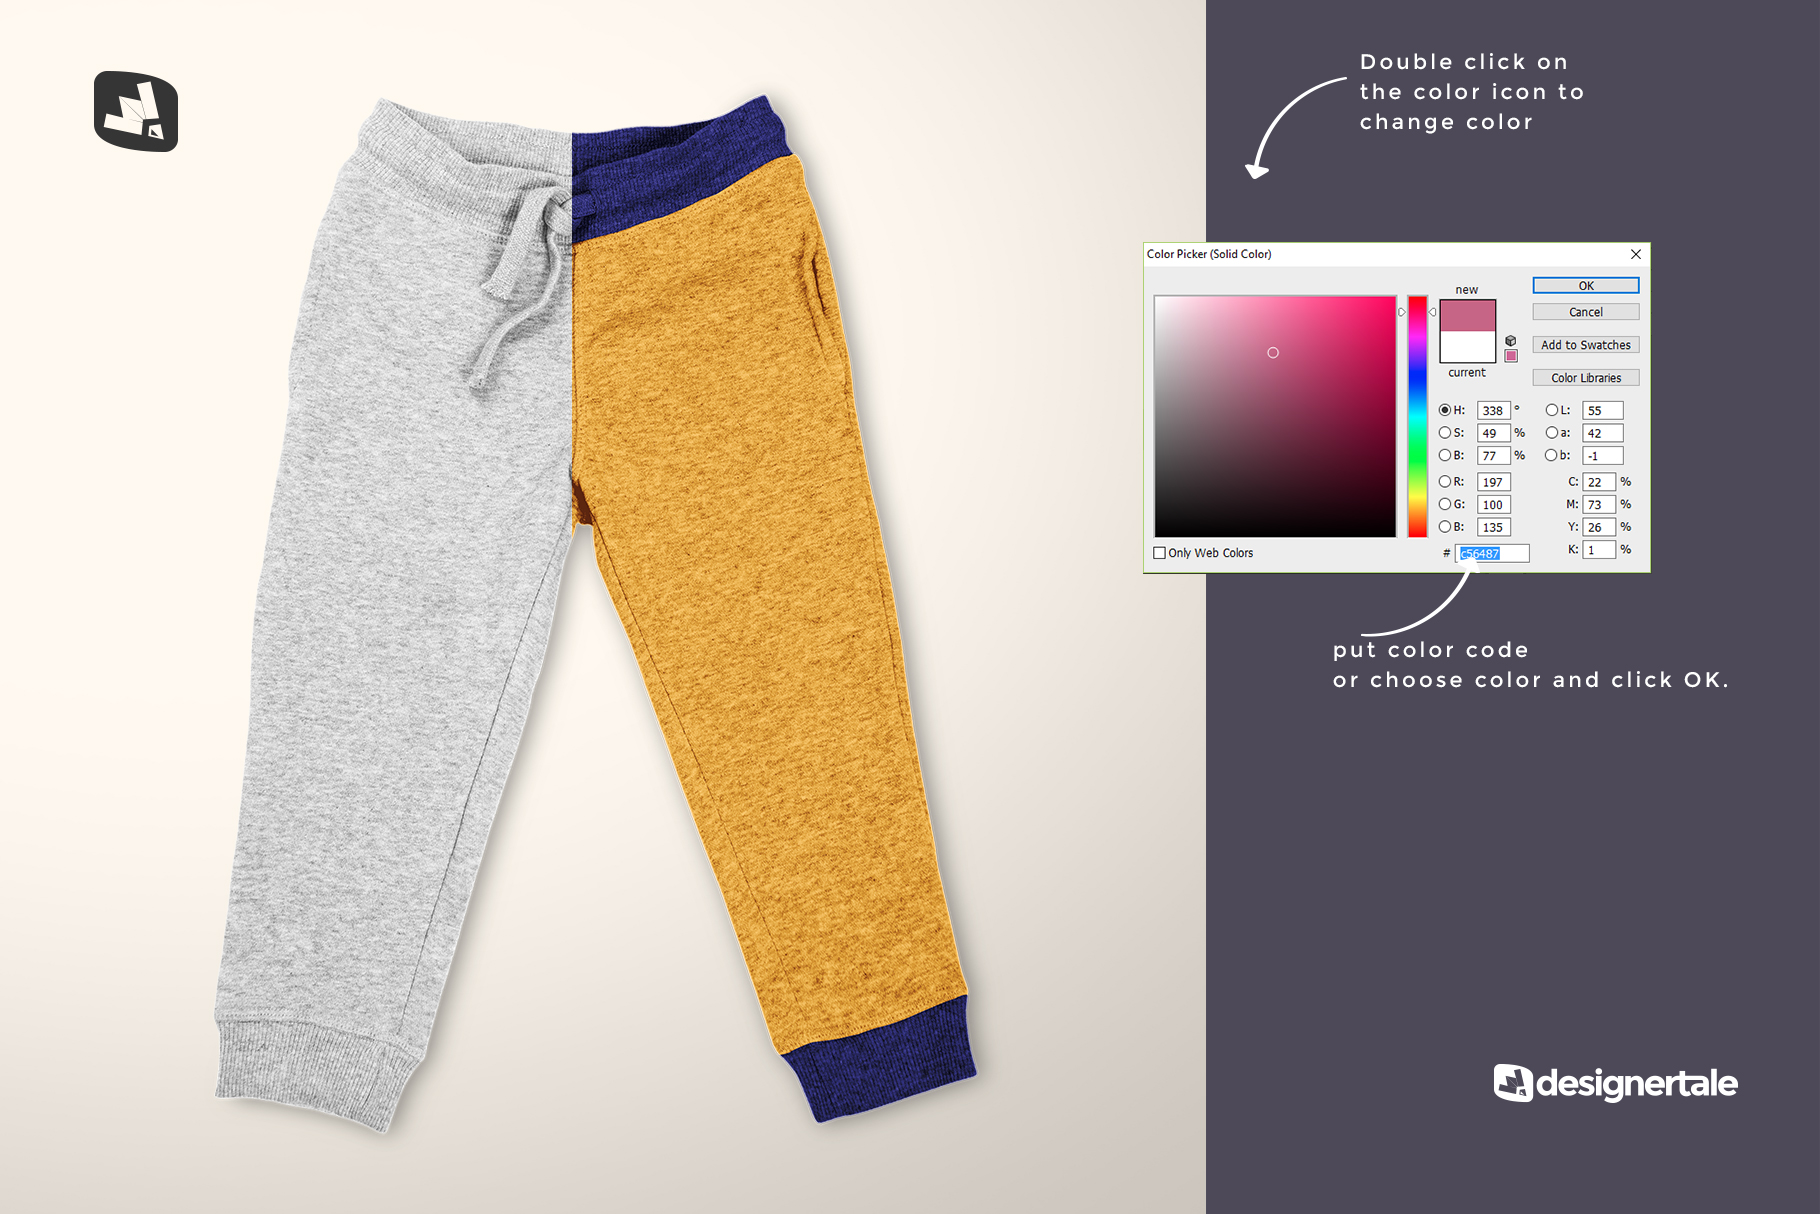 how to change color of the top view infant track pants mockup